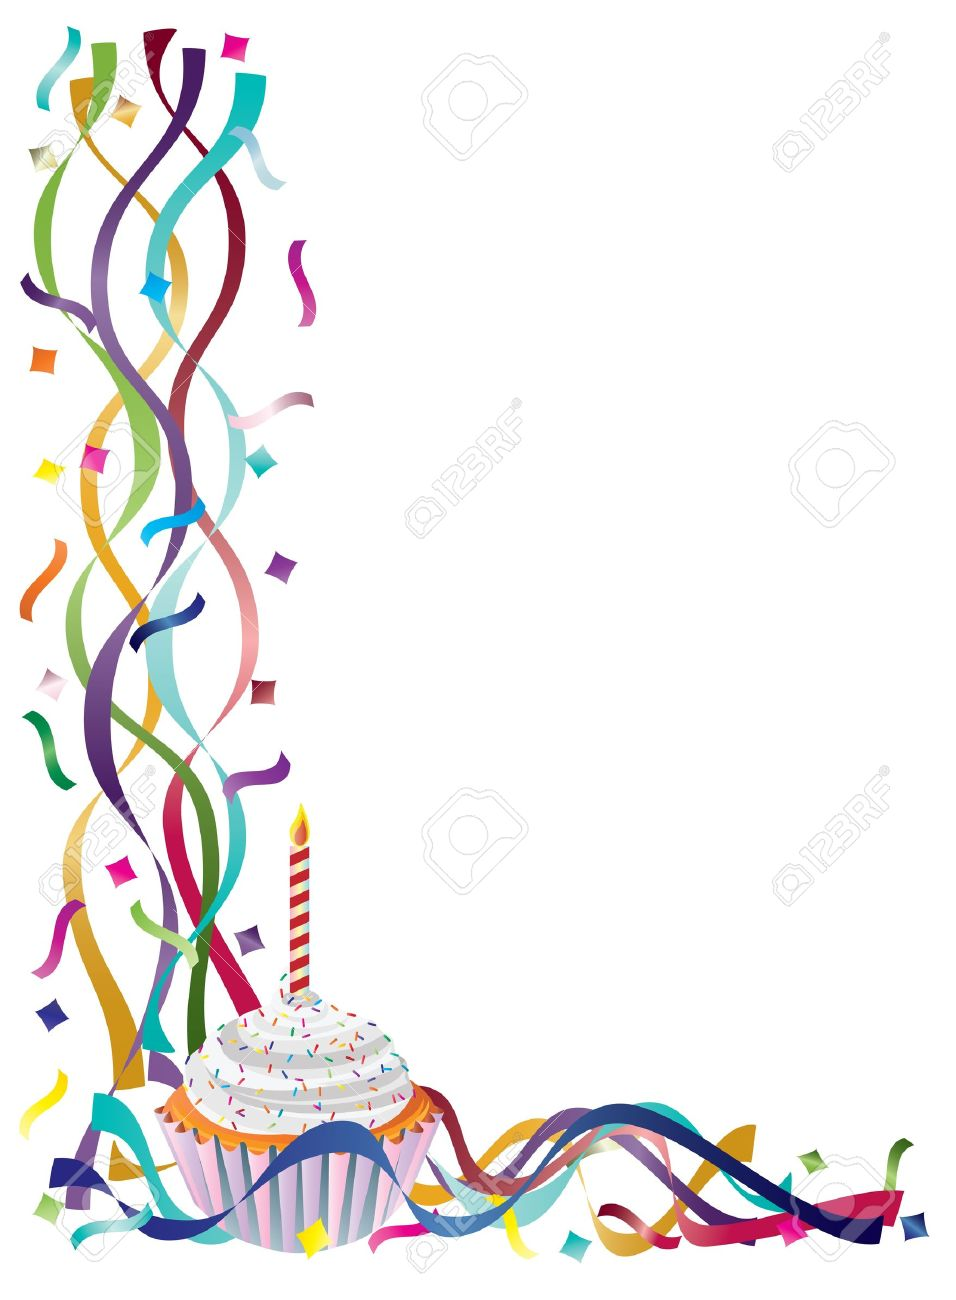 on the border birthday ; 16008406-birthday-cupcake-with-colorful-ribbons-and-confetti-border-background-illustration